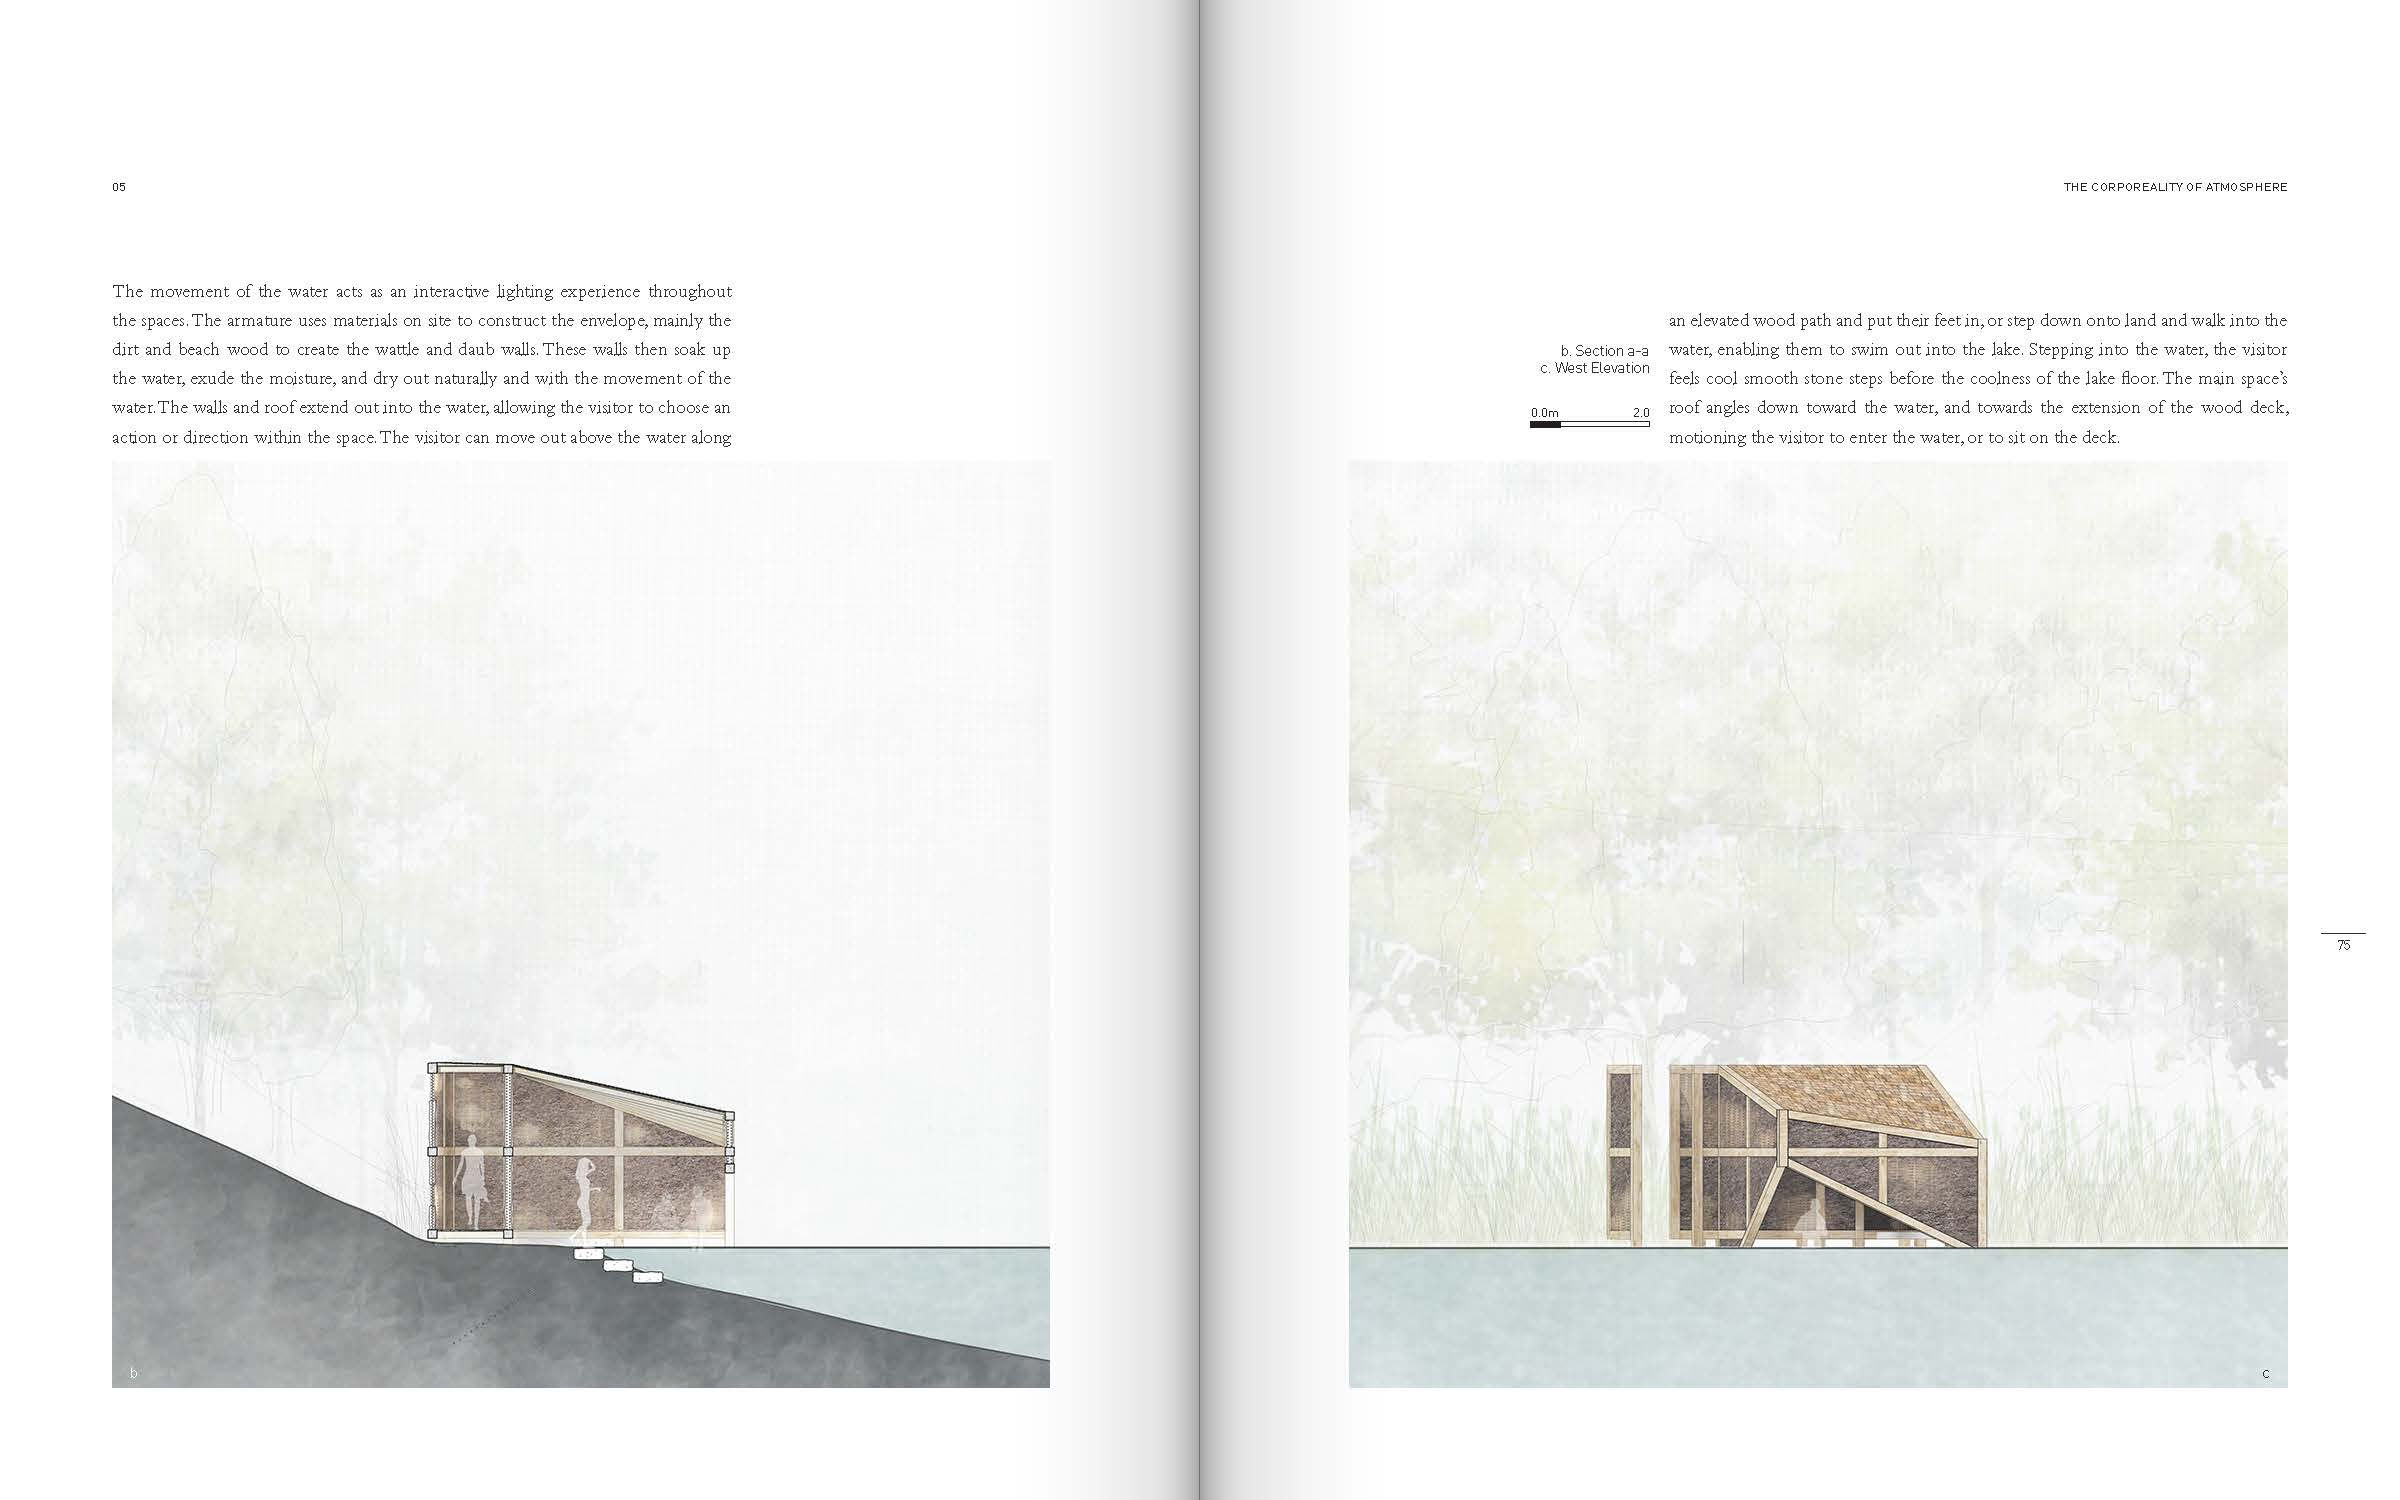 On The Corporeality of Atmosphere_J Walker_Paul Spreads w seam_Page_18.jpg